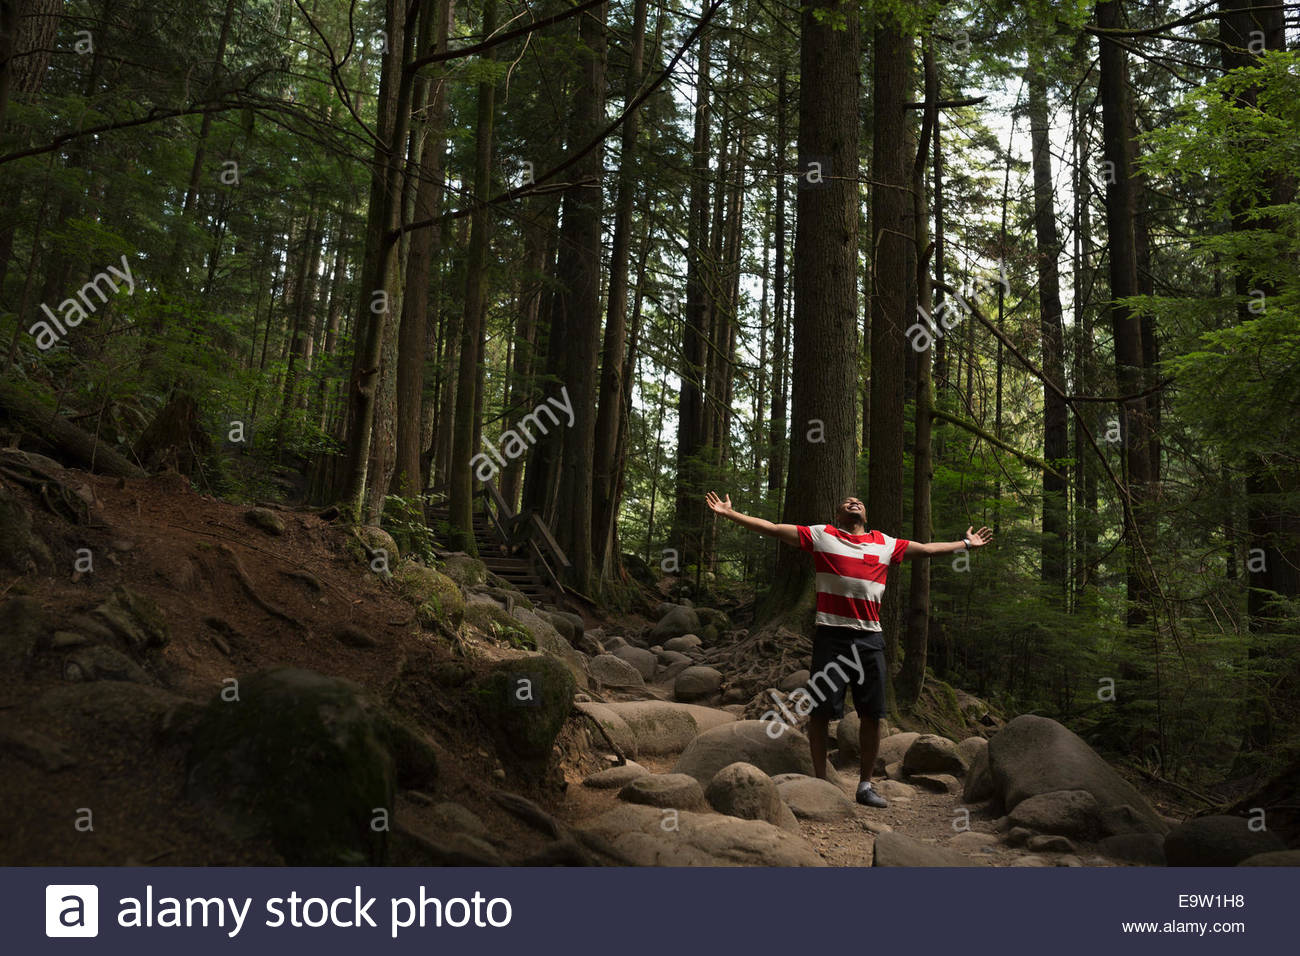 Exuberant man with arms outstretched in woods - Stock Image